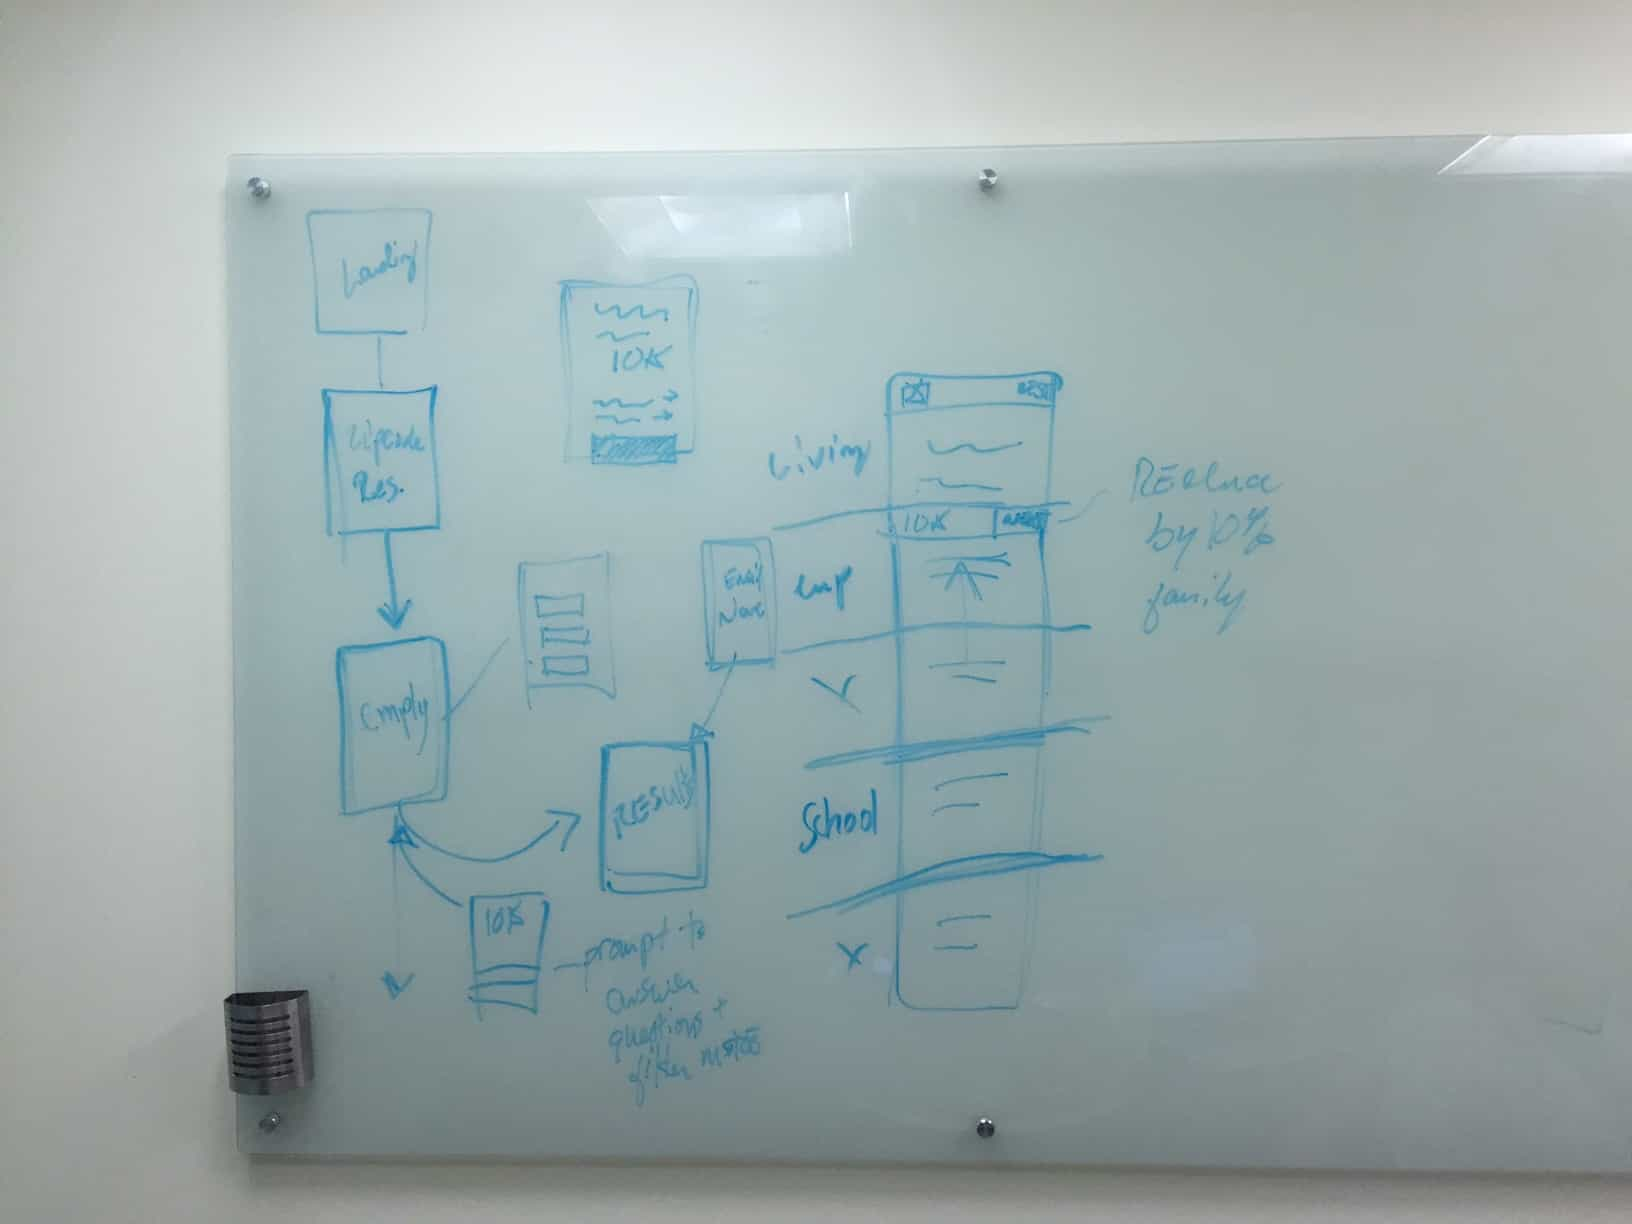 // Whiteboarding session of user flow (2 of 2)